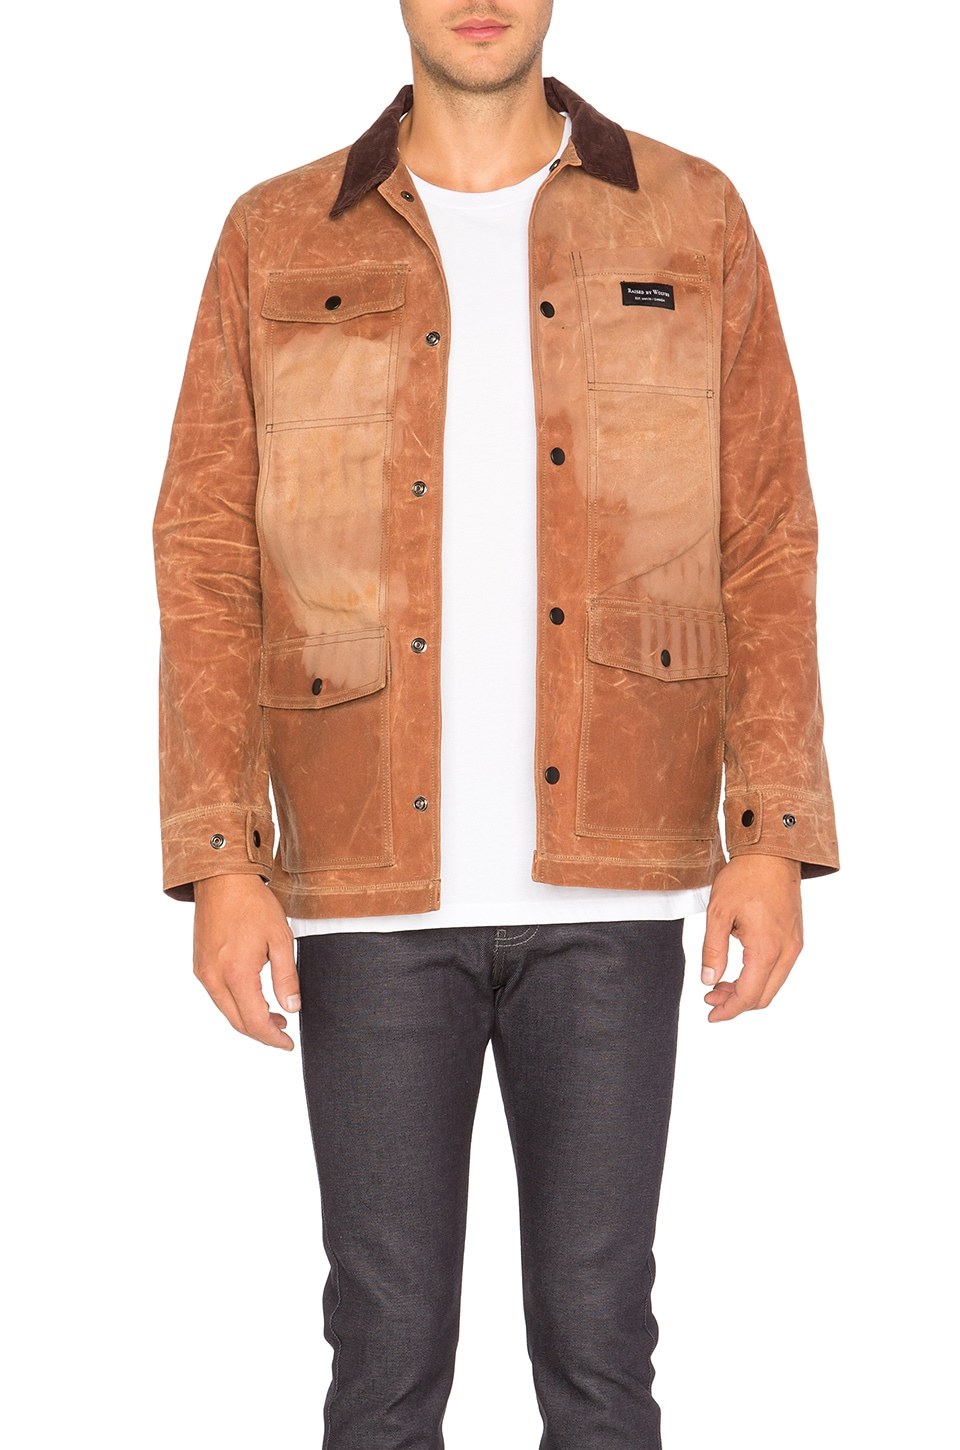 Renfrew Work Jacket by Raised by Wolves